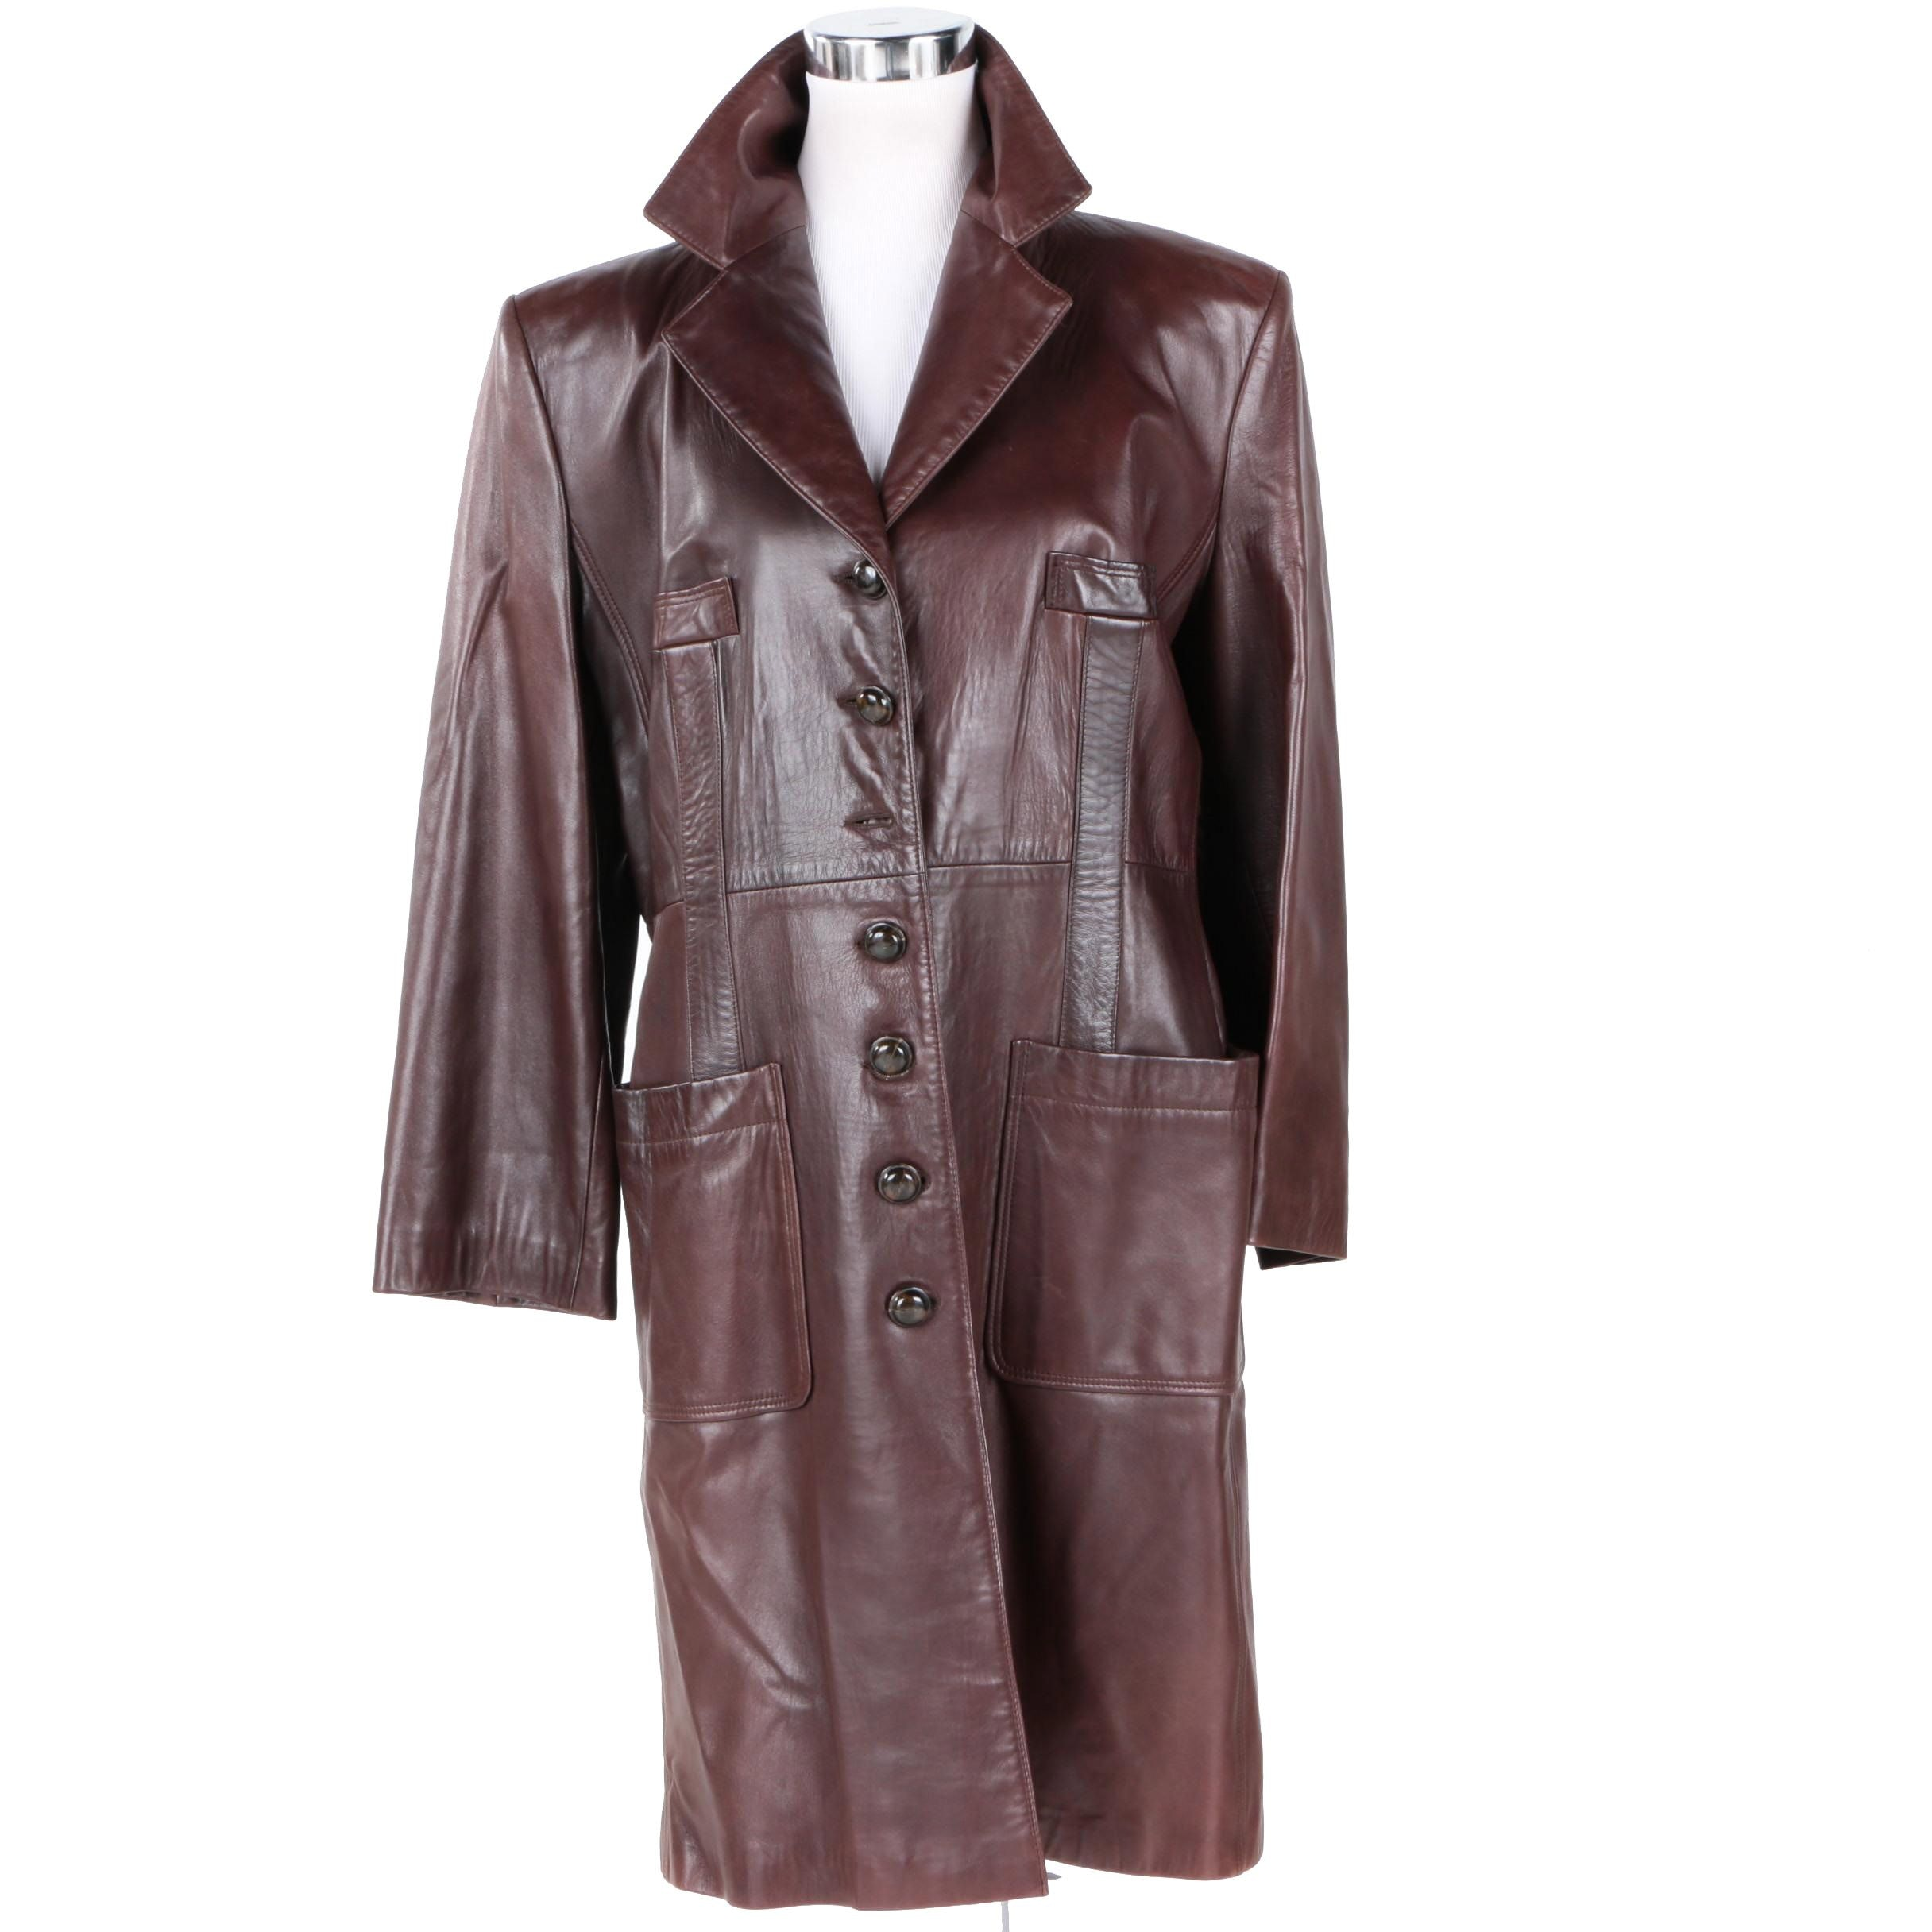 Sonia Rykiel Paris Women's Dyed Lambskin Leather Coat